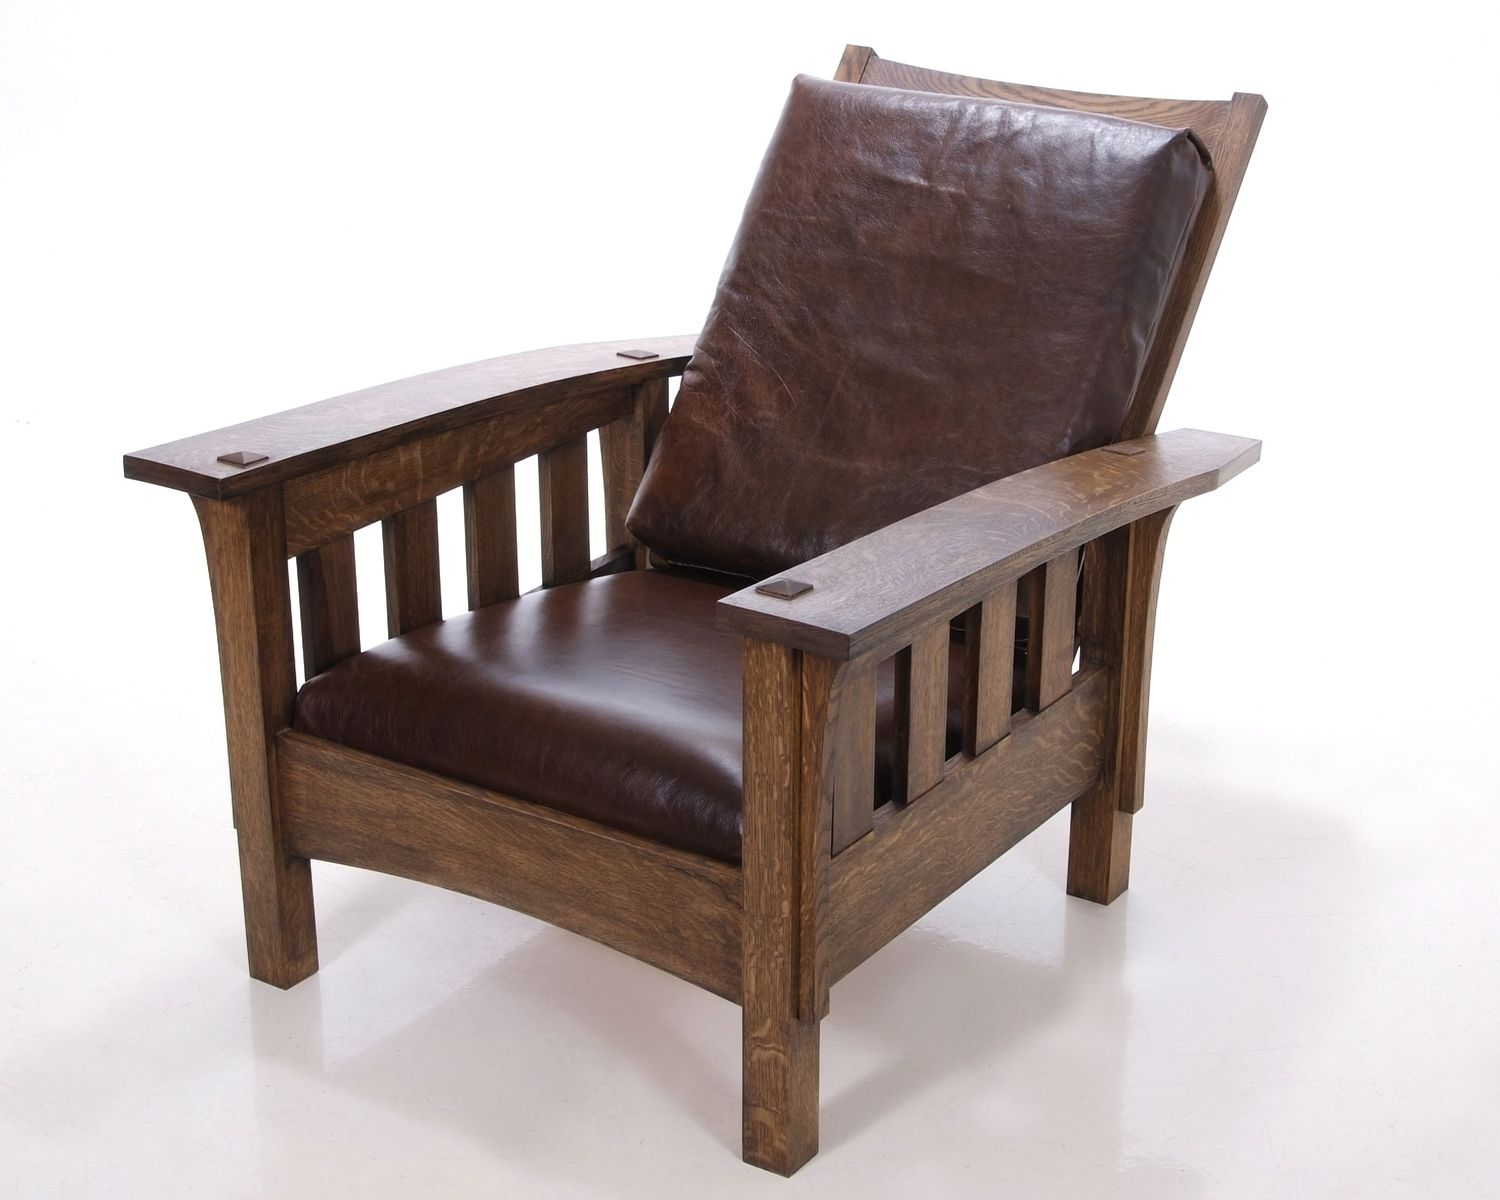 Morris chair plans - This Chair Has Nice Wide Arms Which Would Be Great For Reading Do I Want